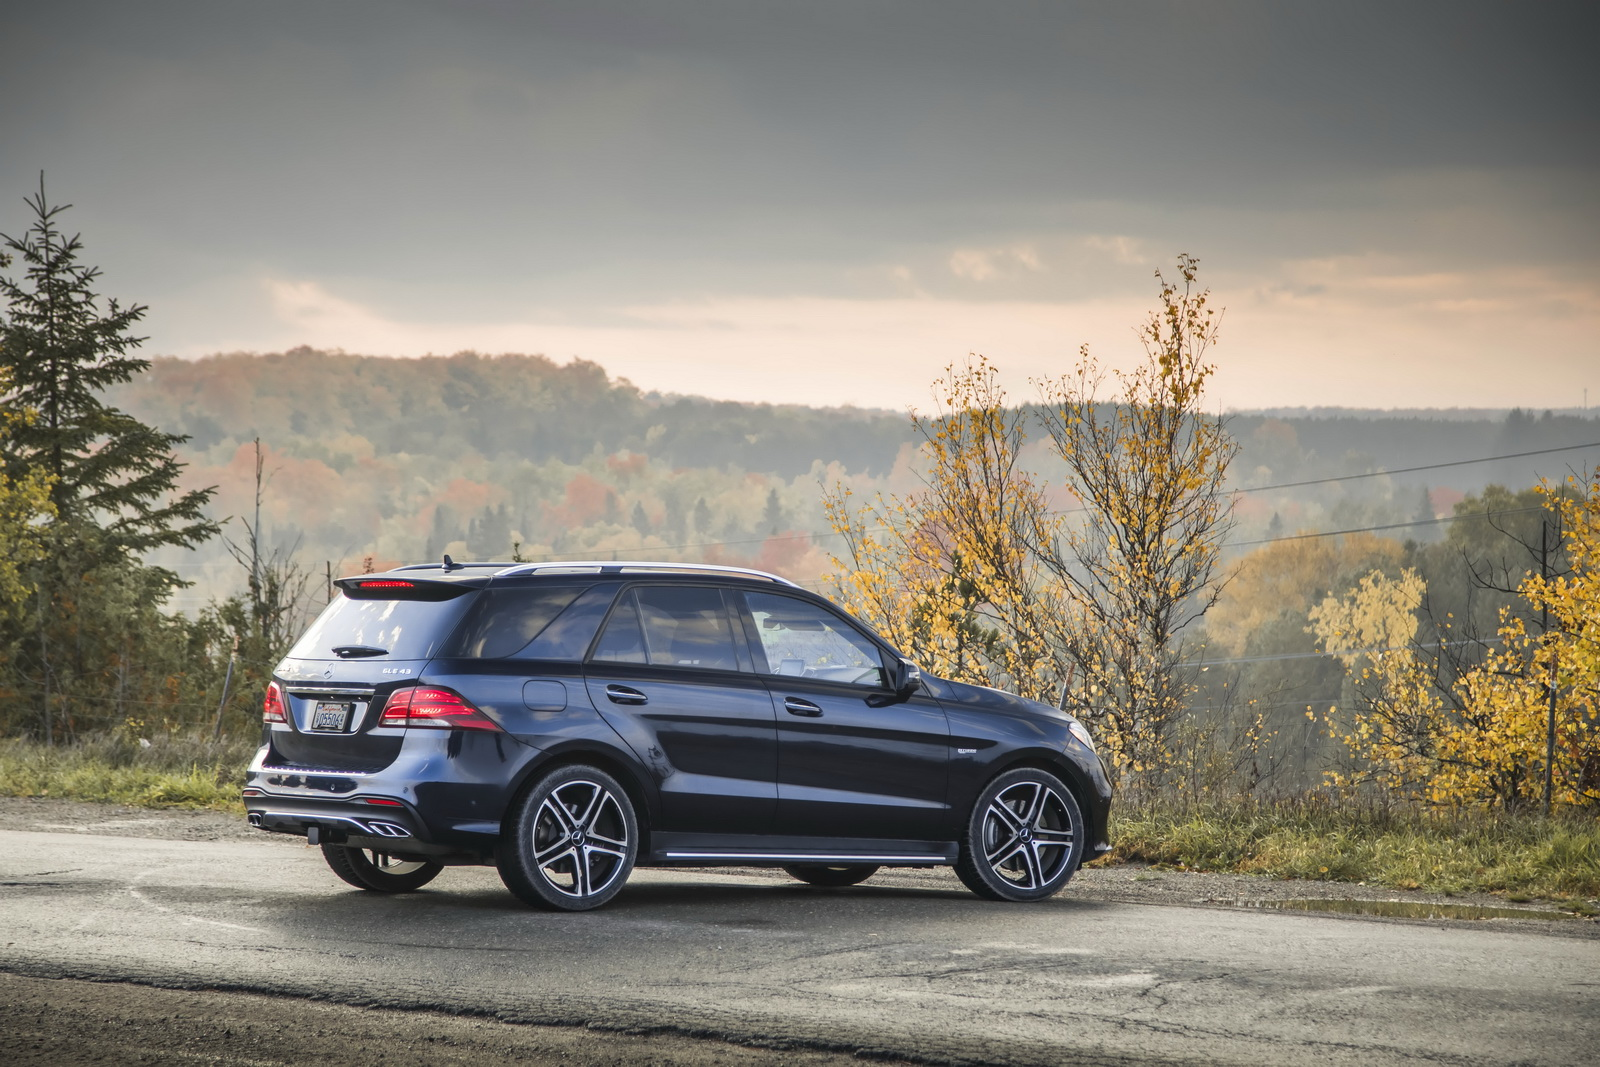 Mercedes-AMG GLE 43 replaces GLE 400 in the US next year - MercedesBlog